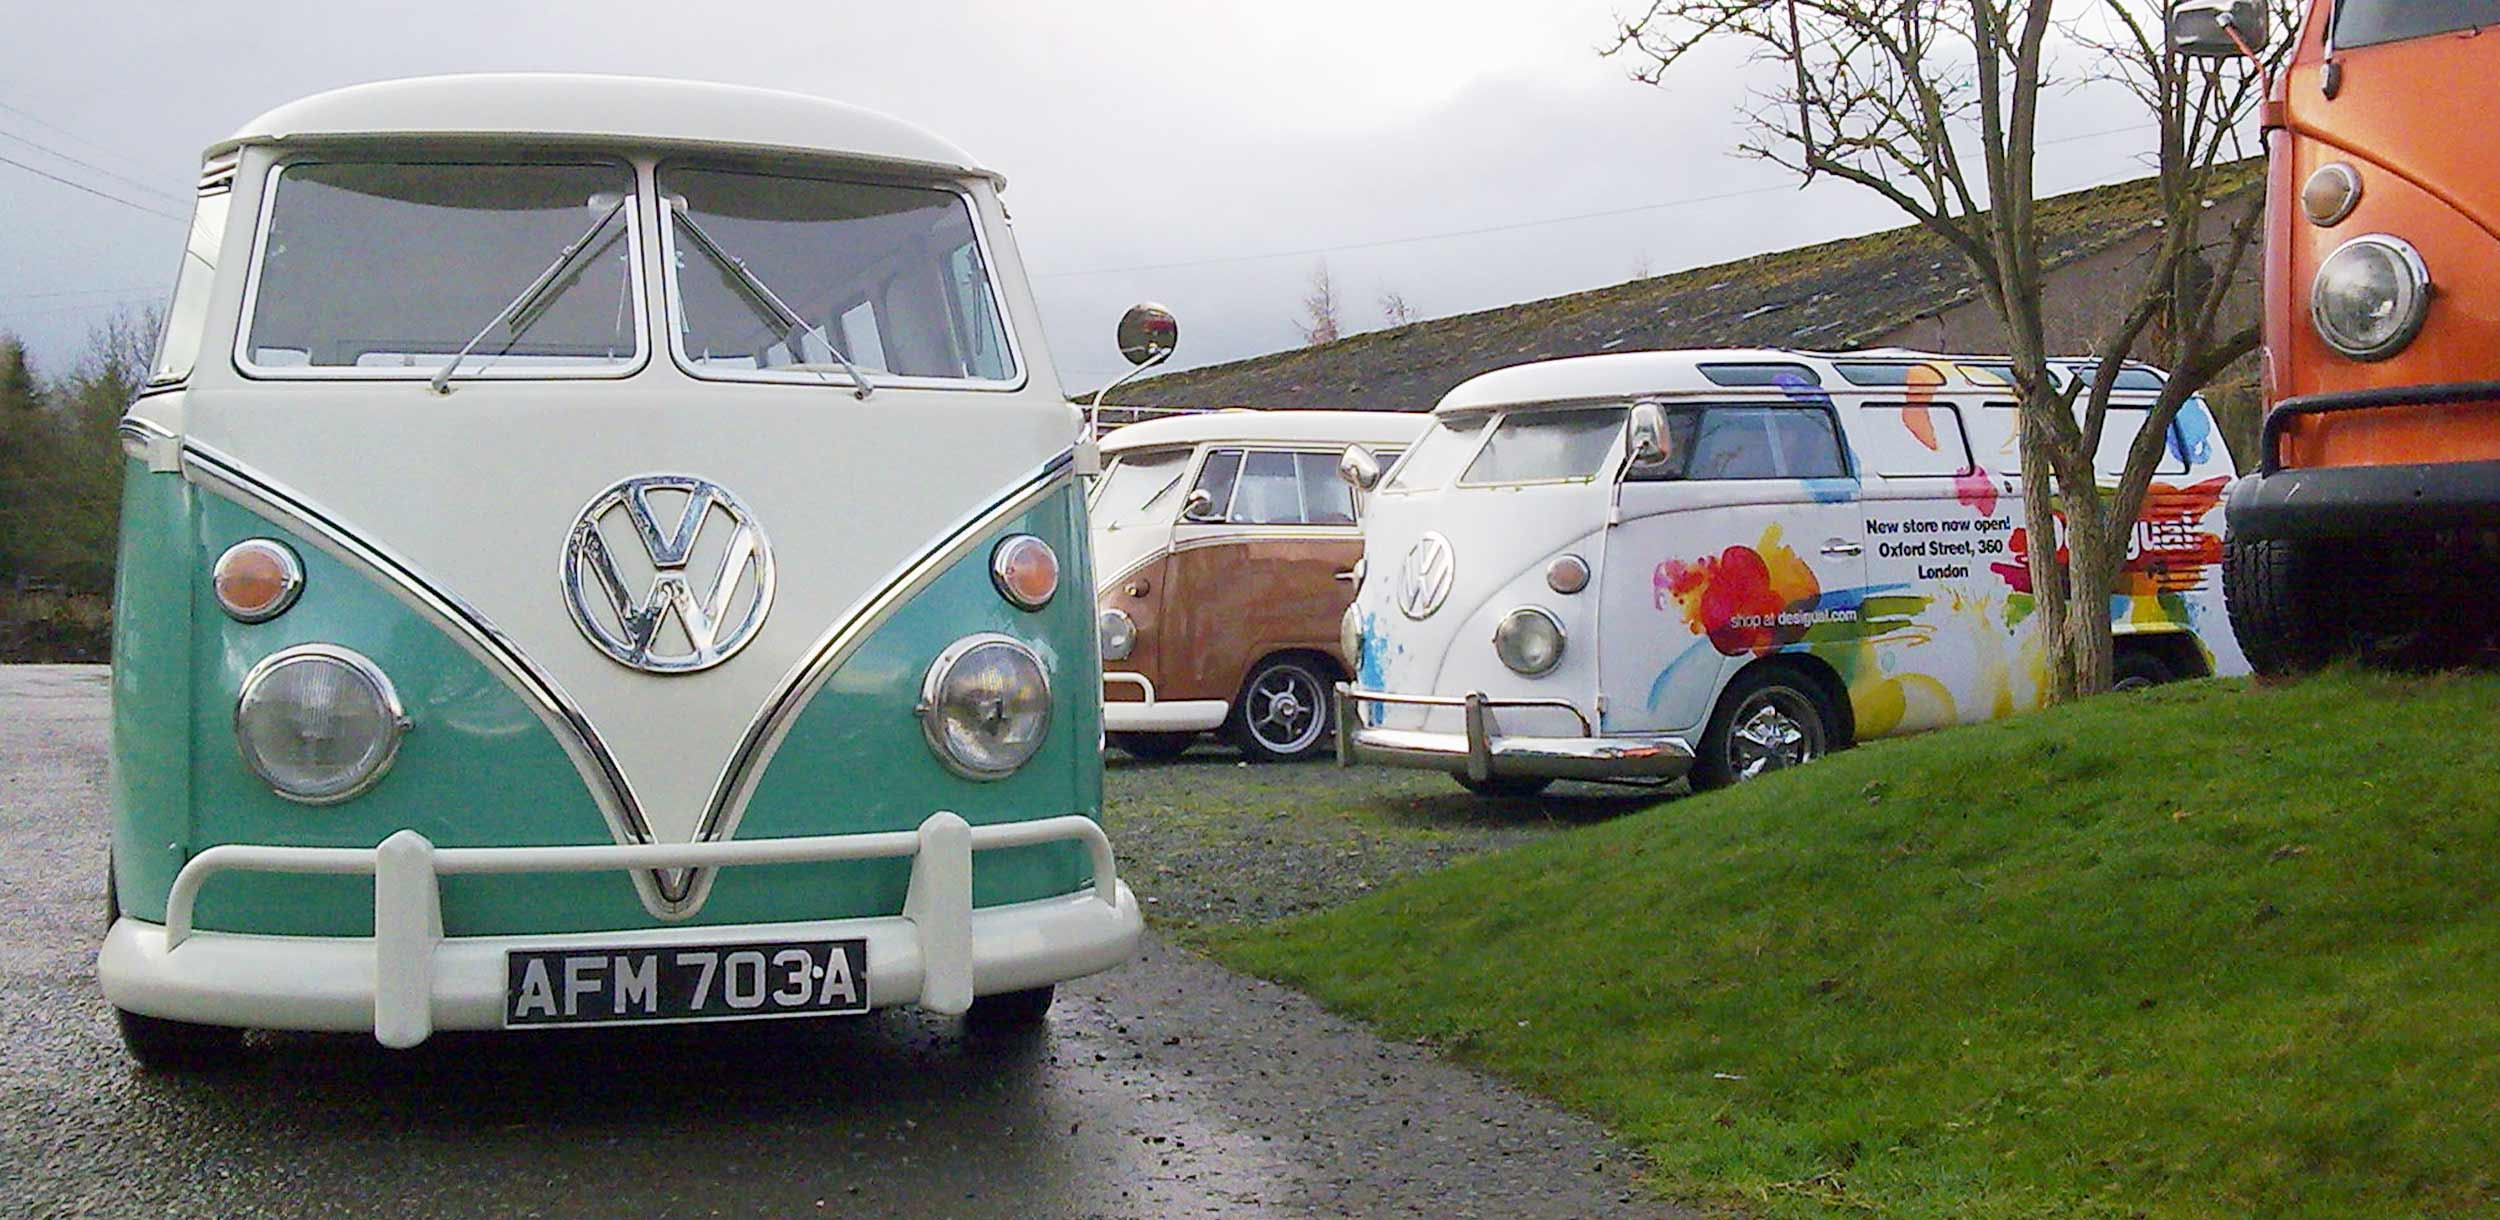 Promotional Marketing Tour Vehicles Branded VW Camper Vans for Hire